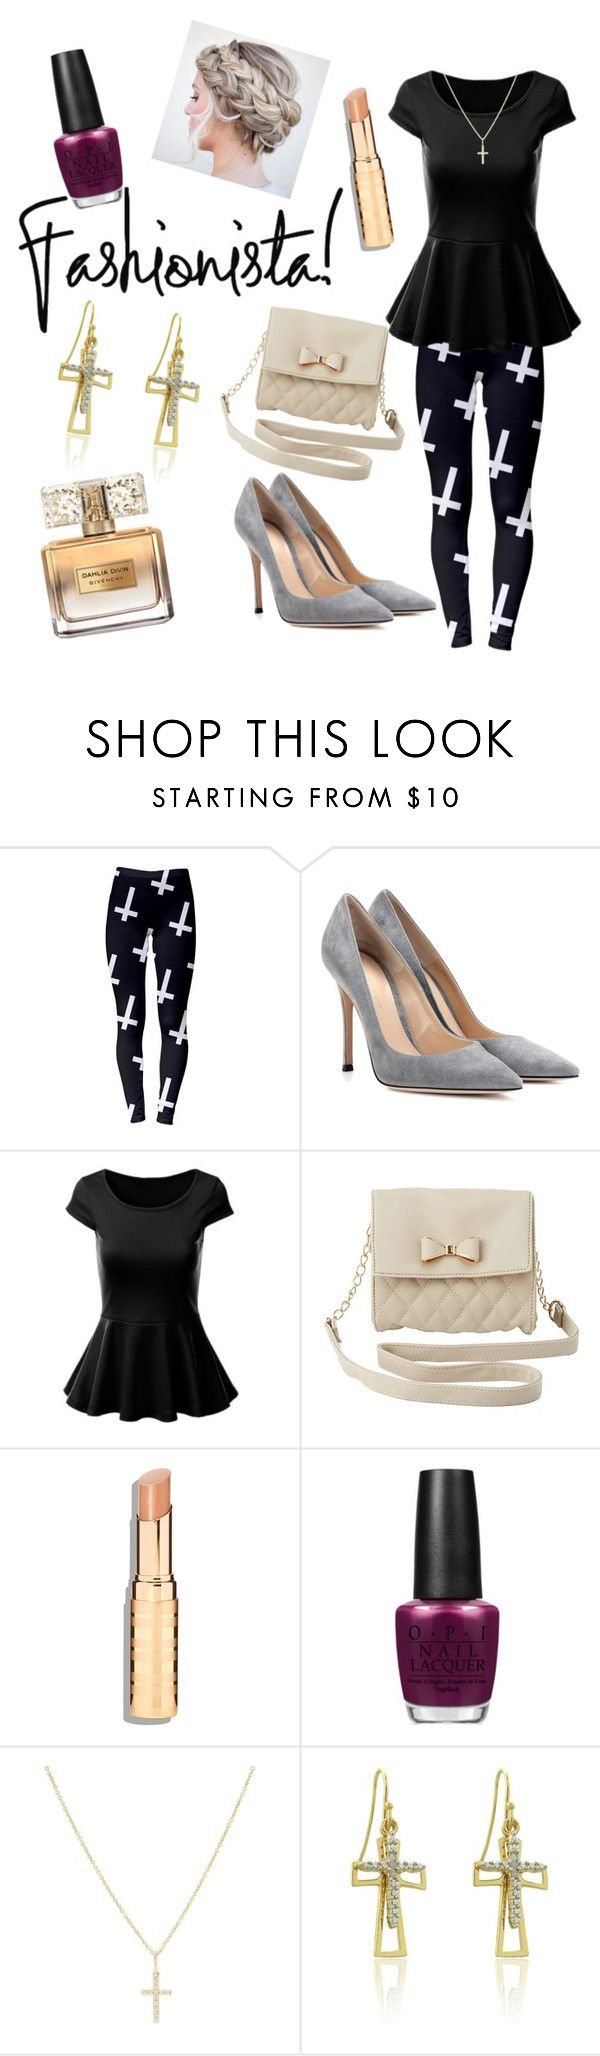 """Sunday Church Outfit"" by nataliekay613 ❤ liked on Polyvore featuring Gianvito Rossi, Charlotte Russe, OPI, Sydney Evan, Finesque and Givenchy"